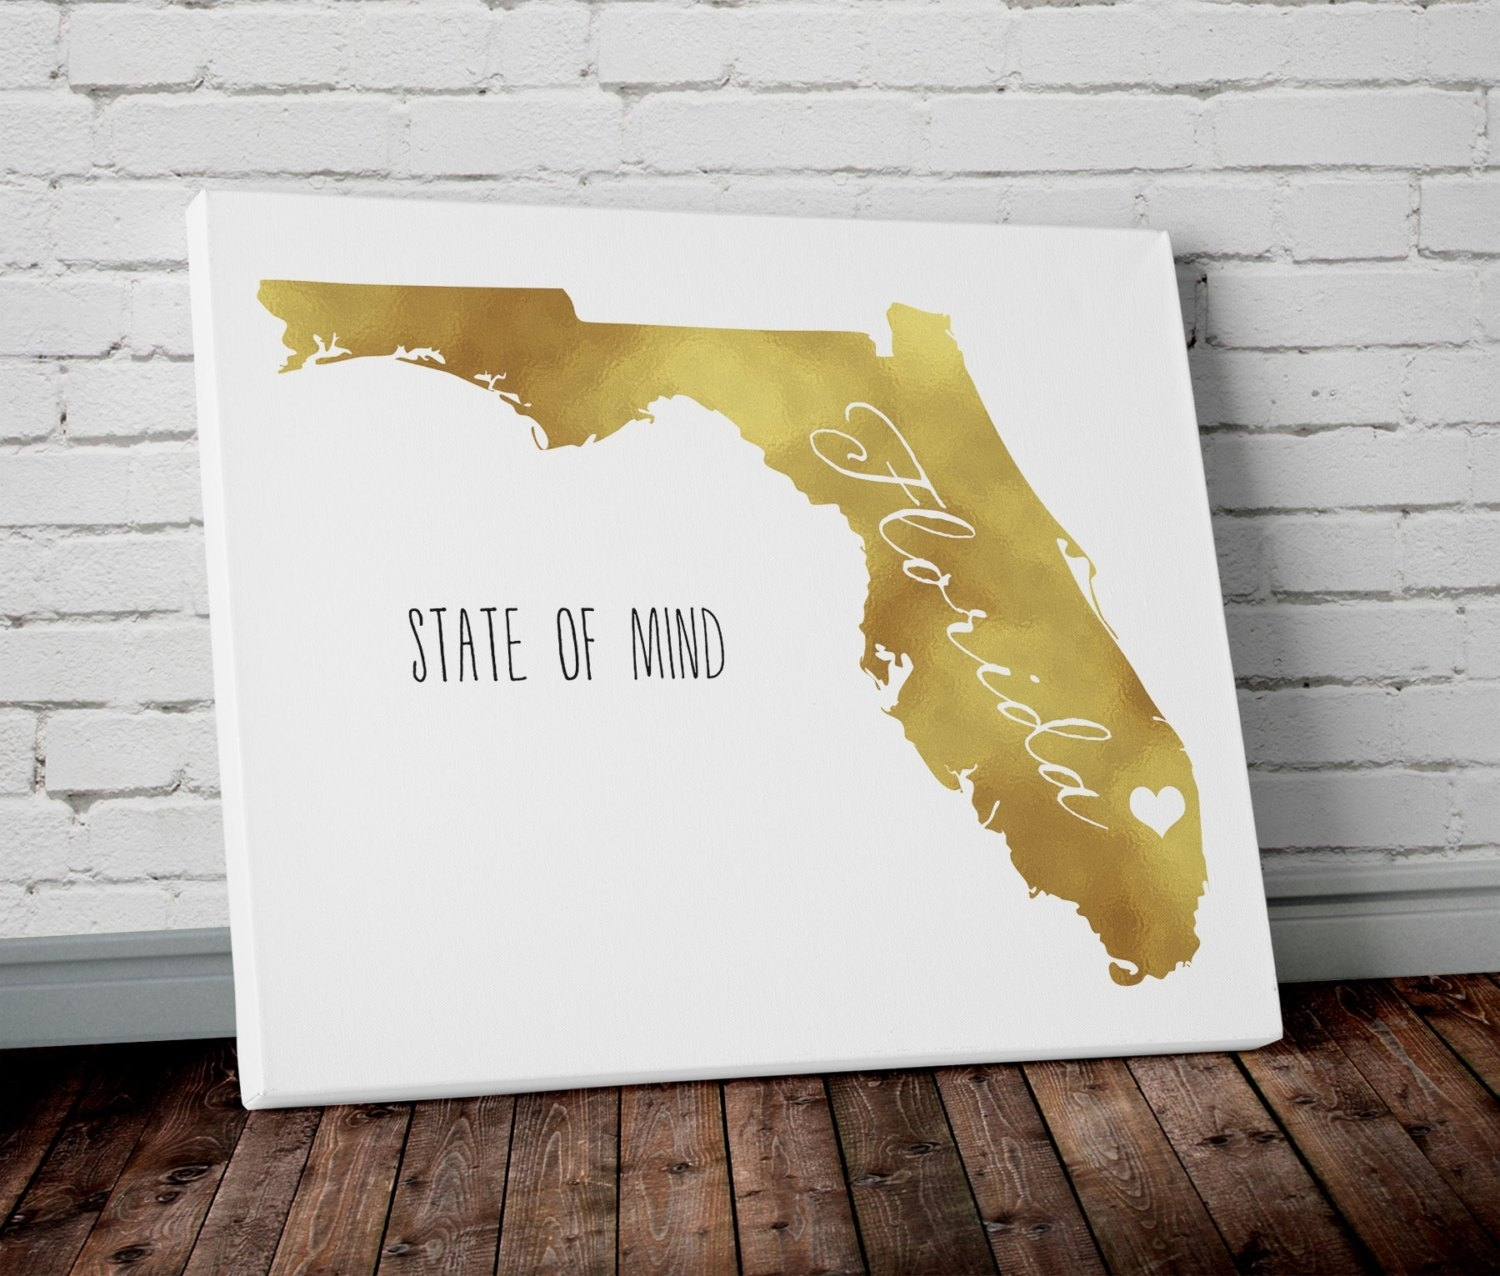 Peaceably Oliver Gal Rose G Feast Canvas Wall Art To Multipurpose Within Current Florida Wall Art (View 13 of 20)